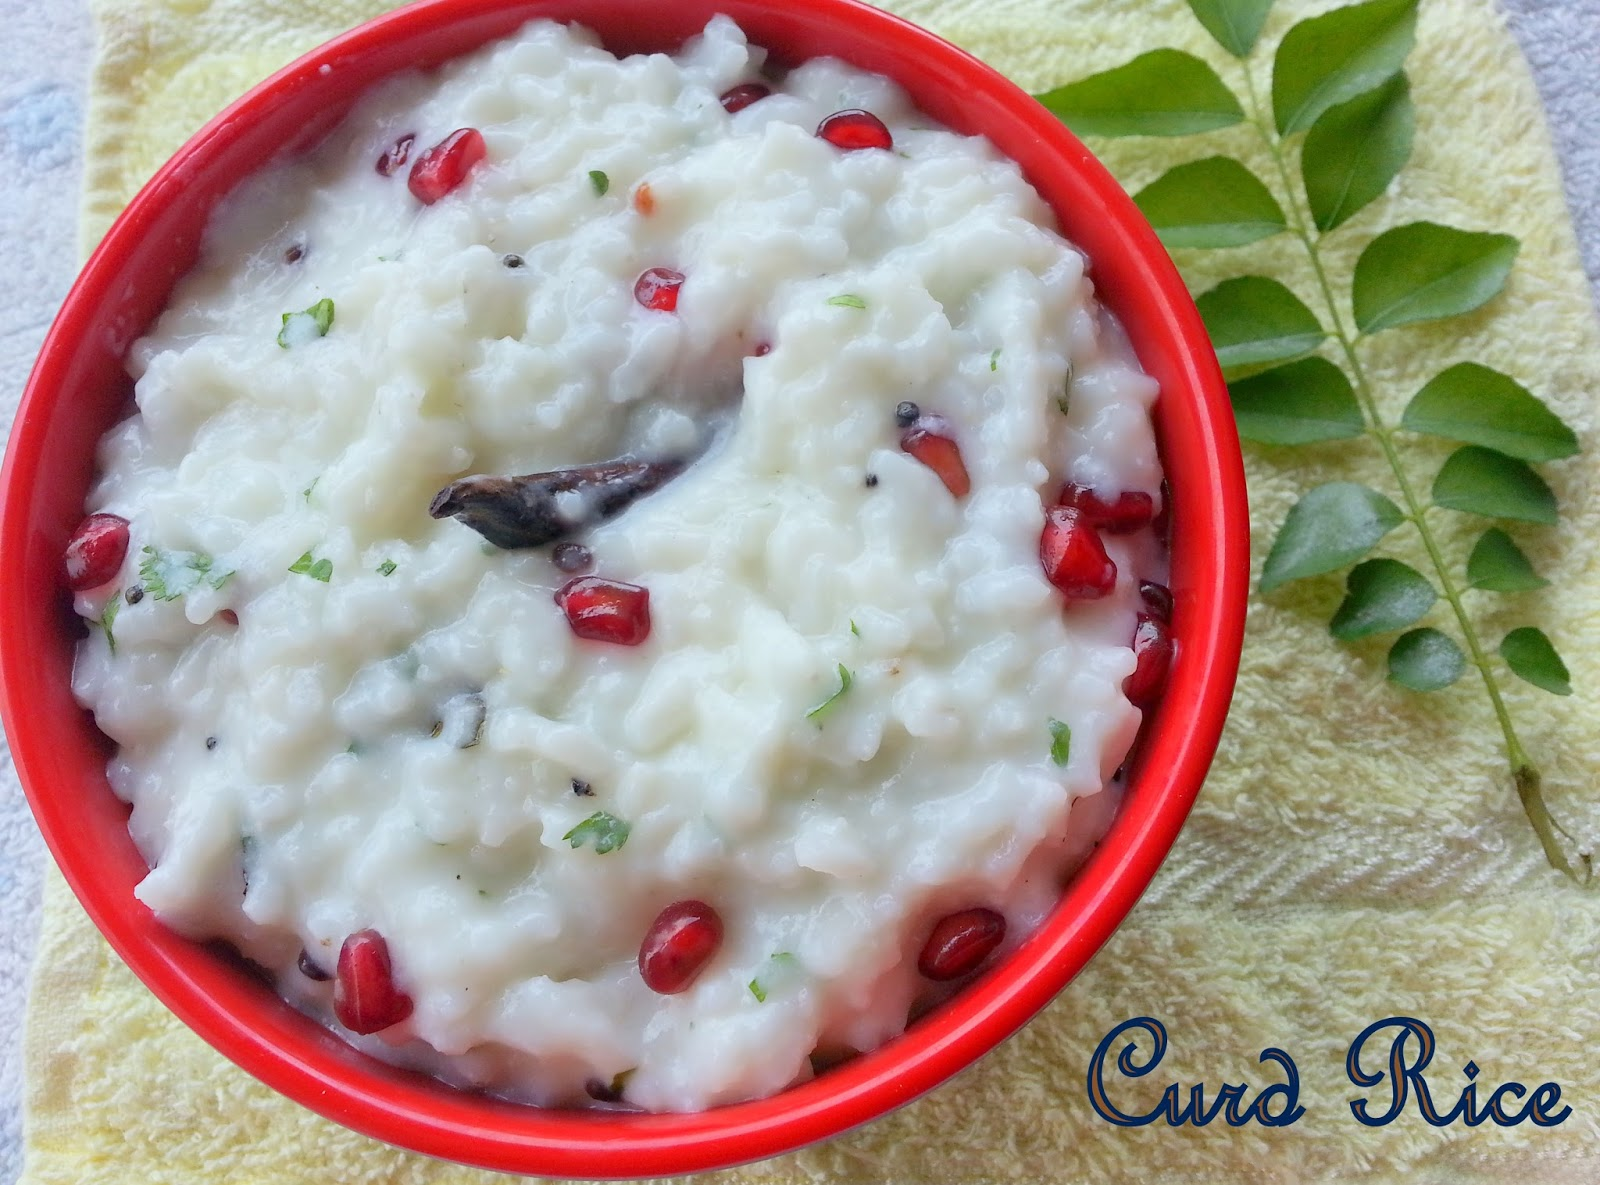 Curd Rice Thayir Sadam South Indian Yogurt Recipe Healthy Lunch Box